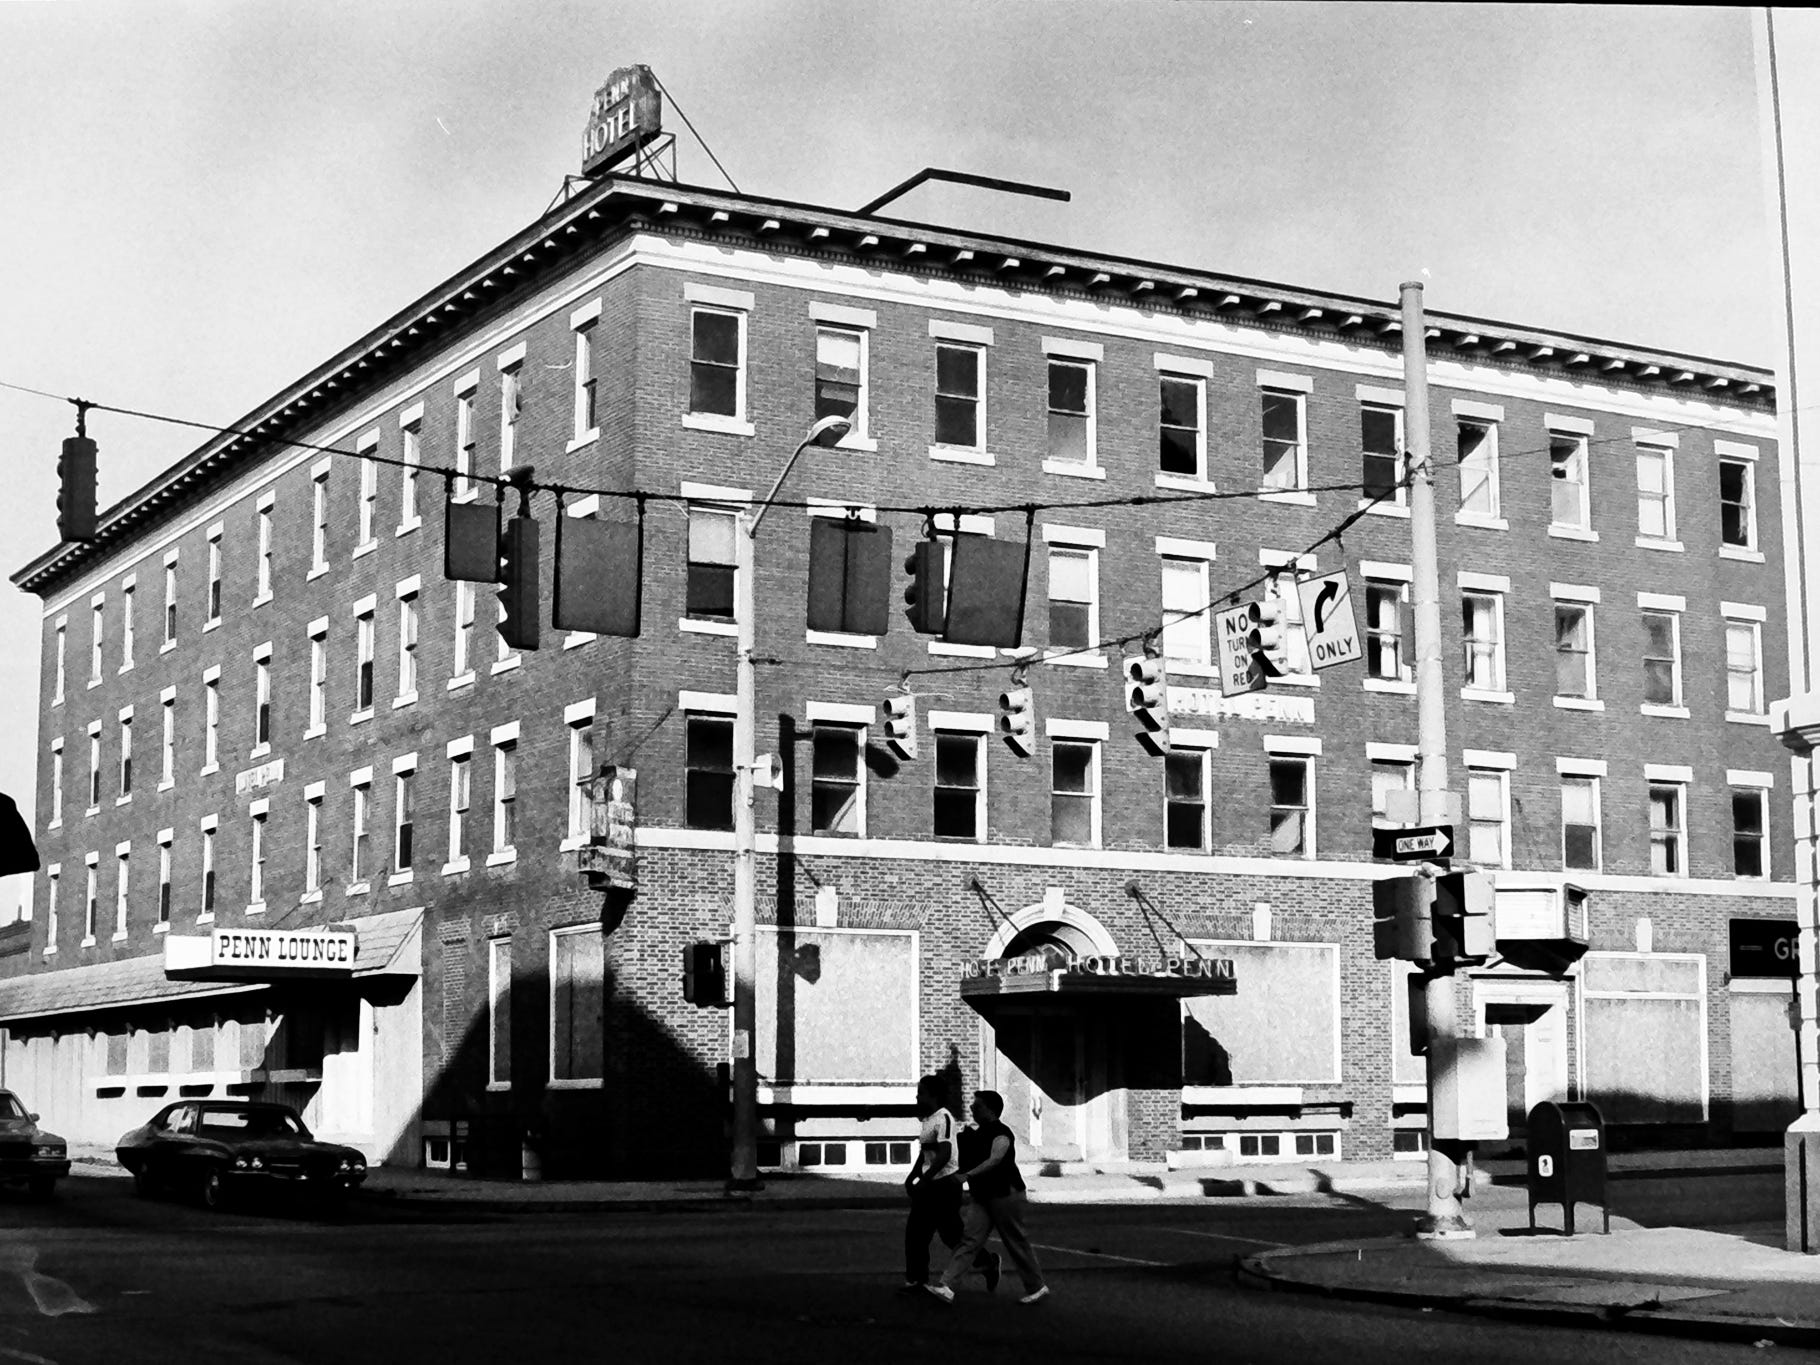 In 1985, The Hotel Penn at the intersection of Philadelphia and North George streets in York was boarded up and inching closer to the wrecking ball. It is the current site of the York County Judicial Center. The Appell Center is at the far right.